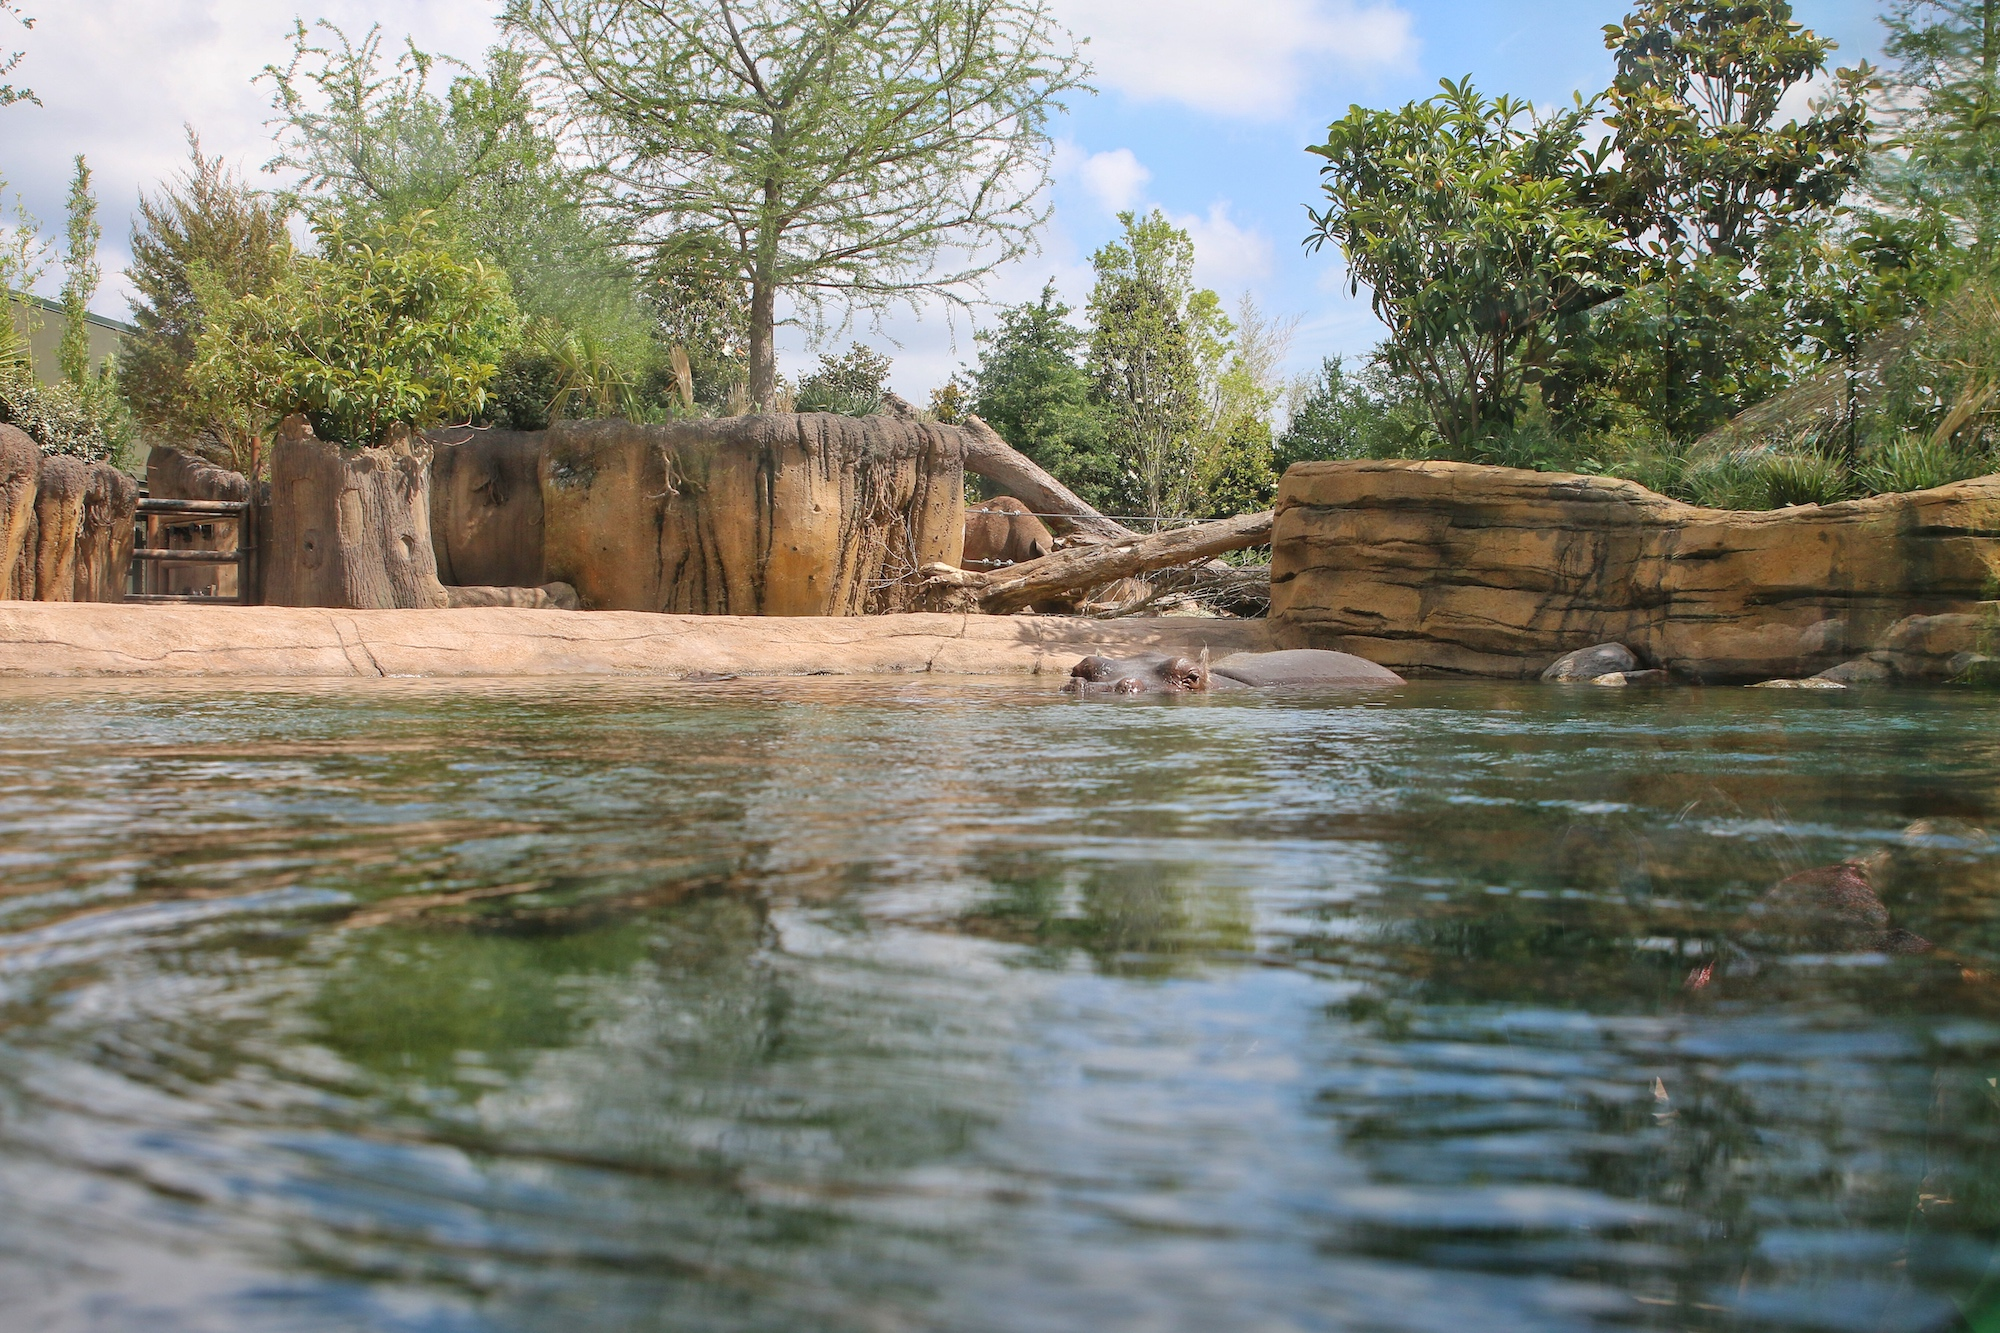 new hippo exhibit at Fort Worth zoo